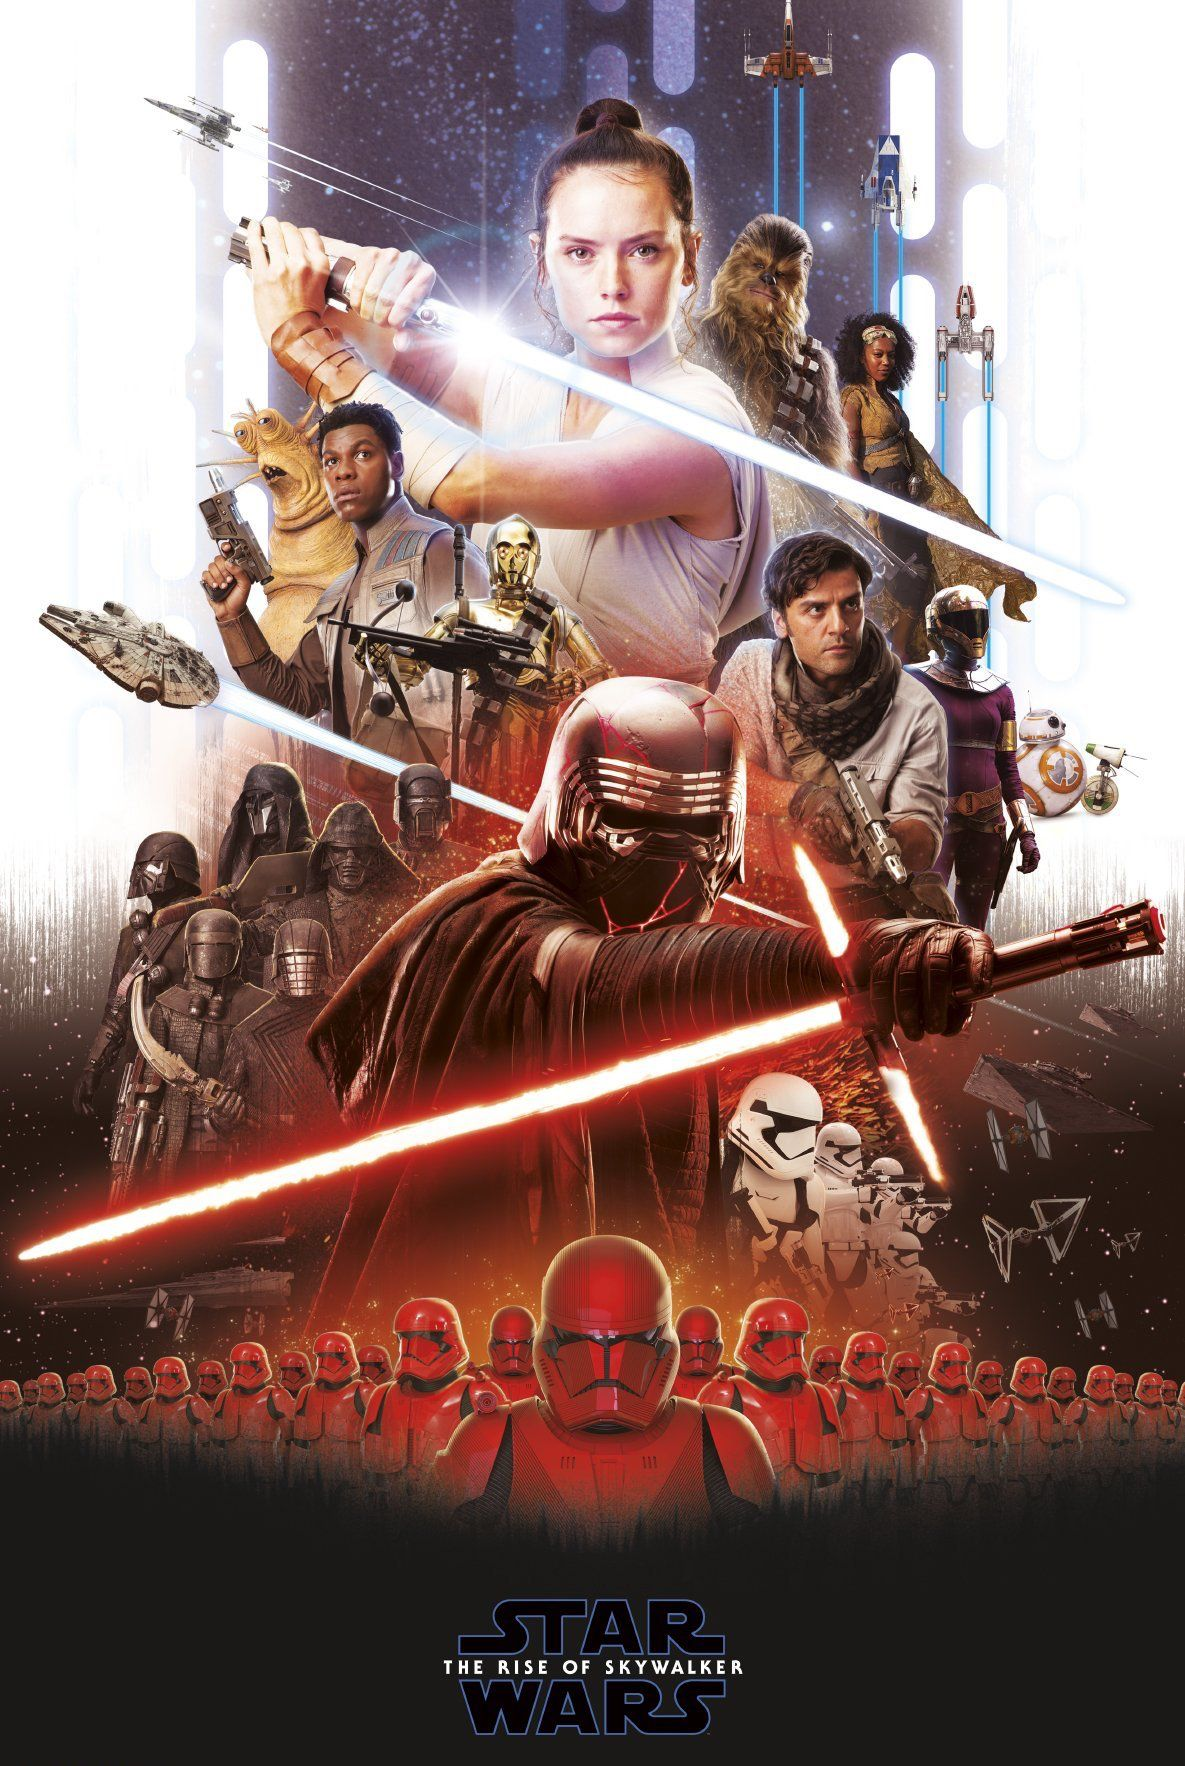 STAR WARS THE FORCE AWAKENS RED MOVIE POSTER FILM A4 A3 ART PRINT CINEMA